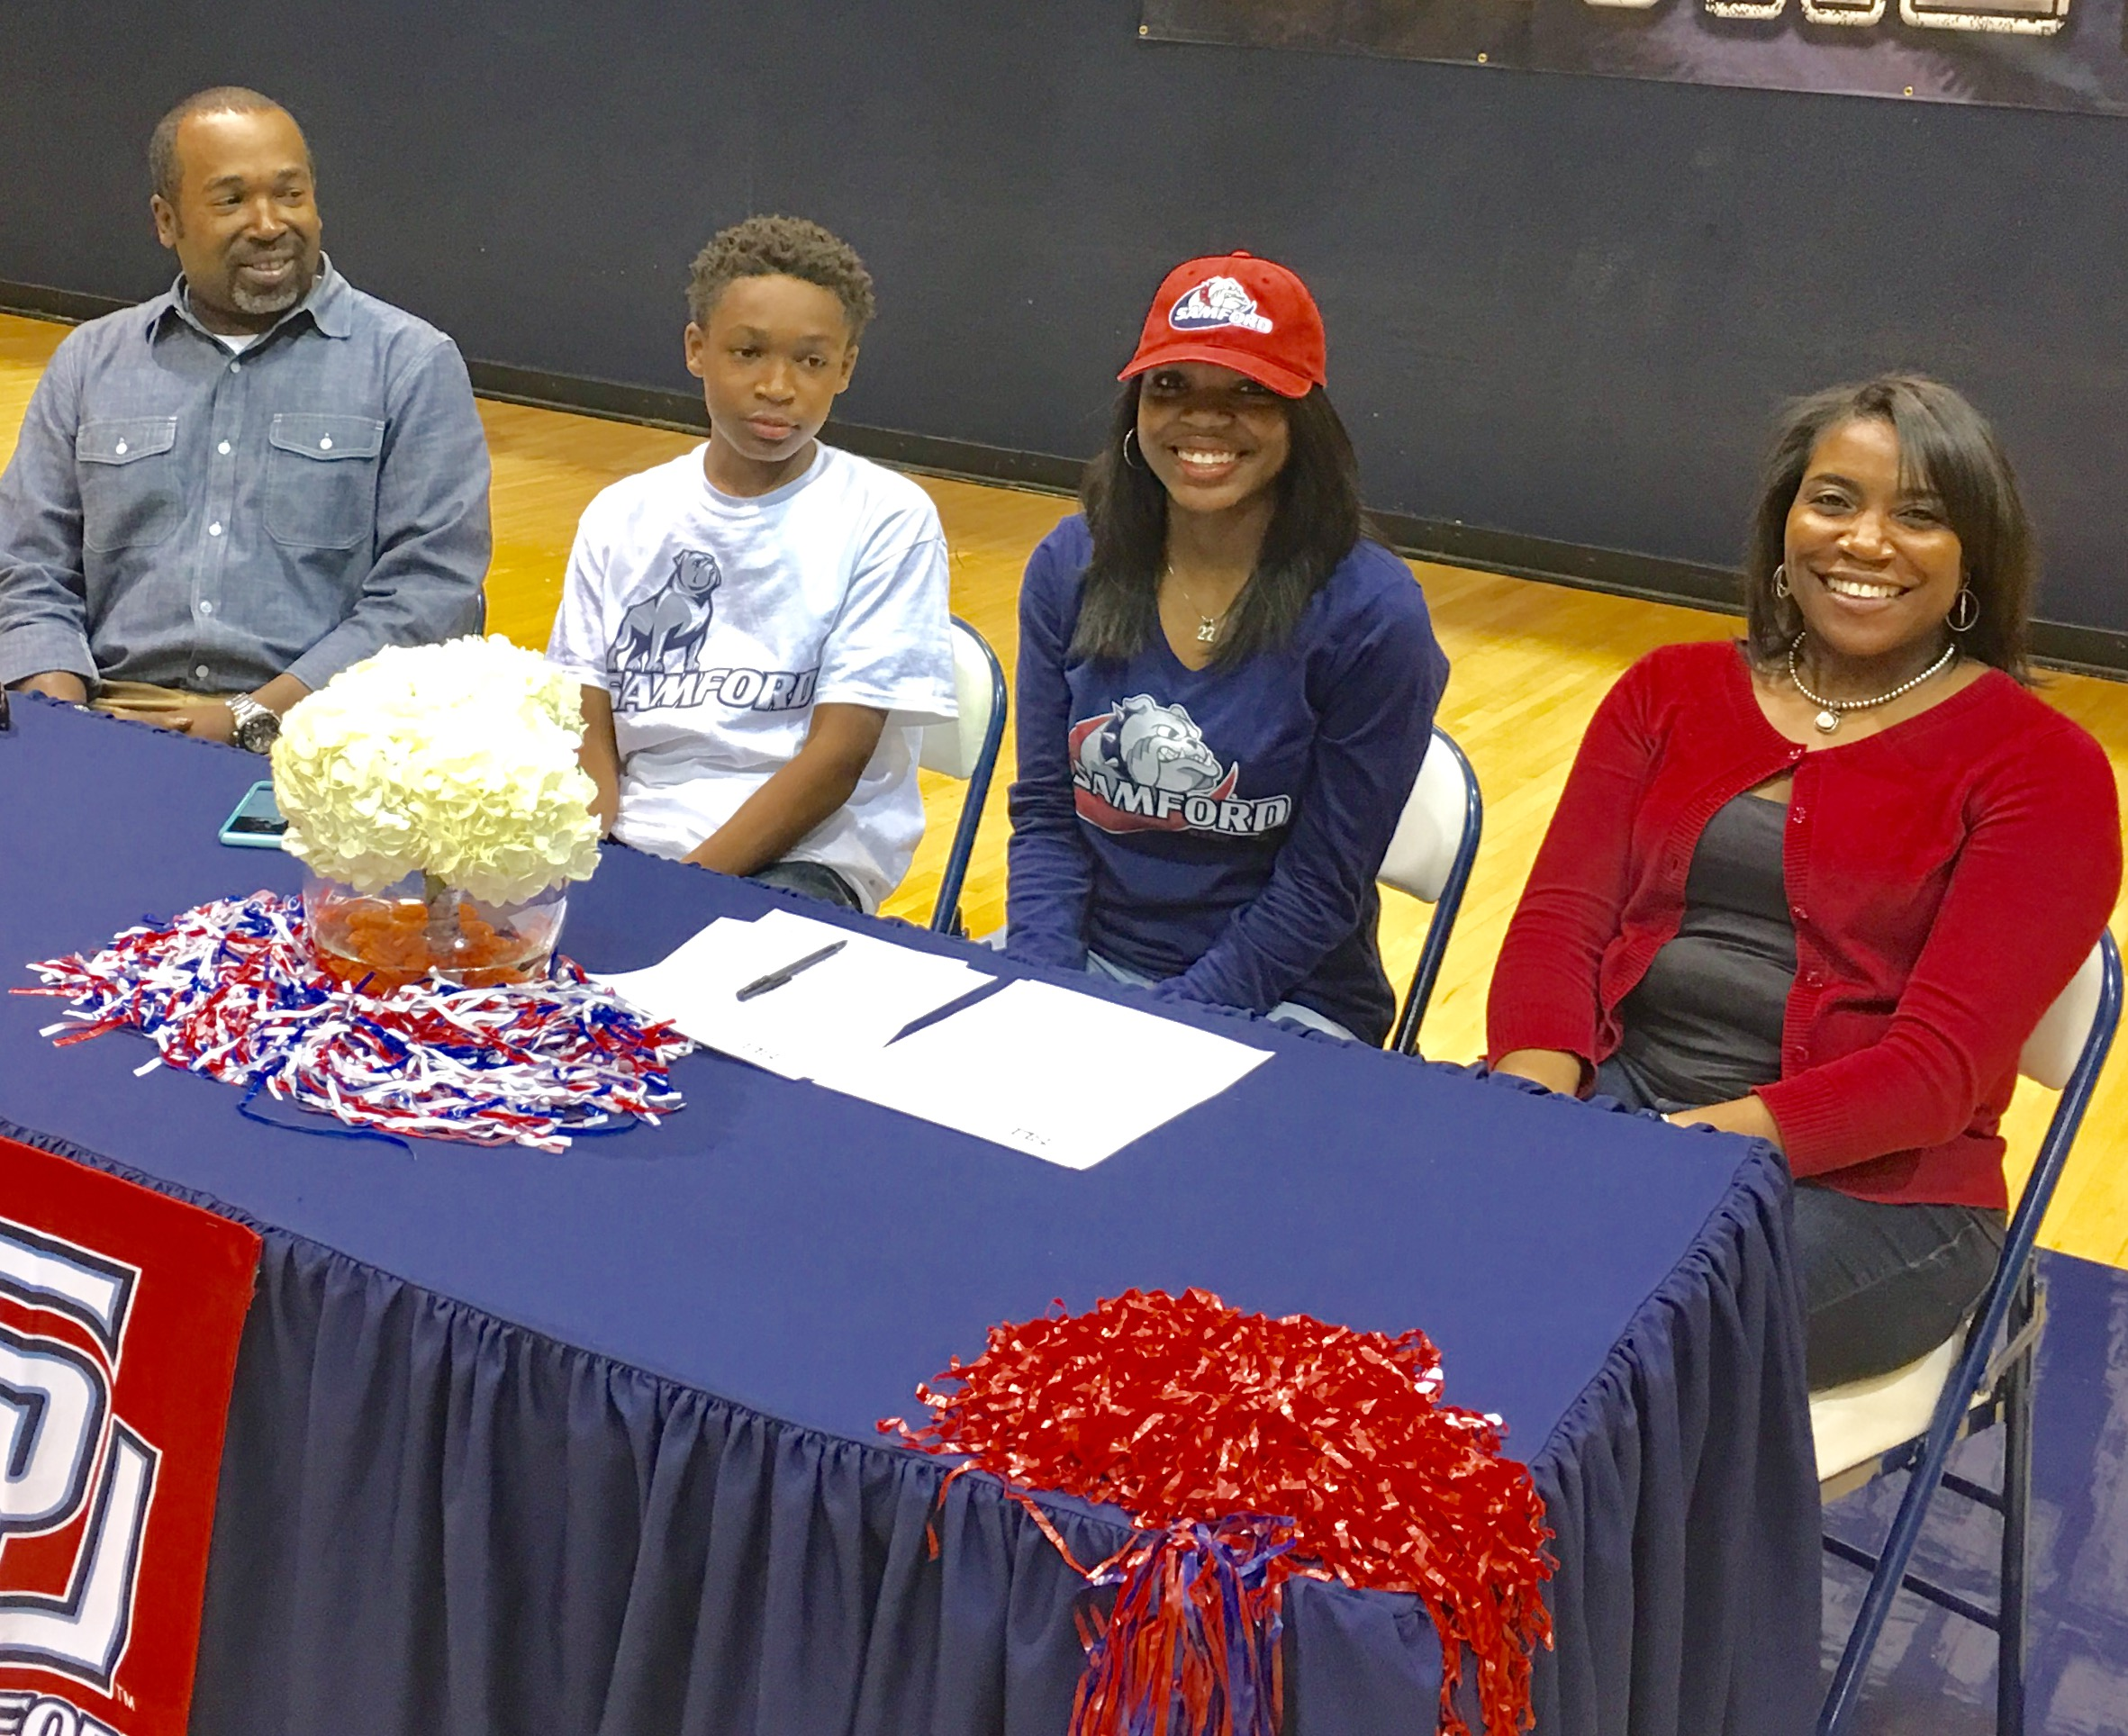 Omar makes it official: She's Samford bound